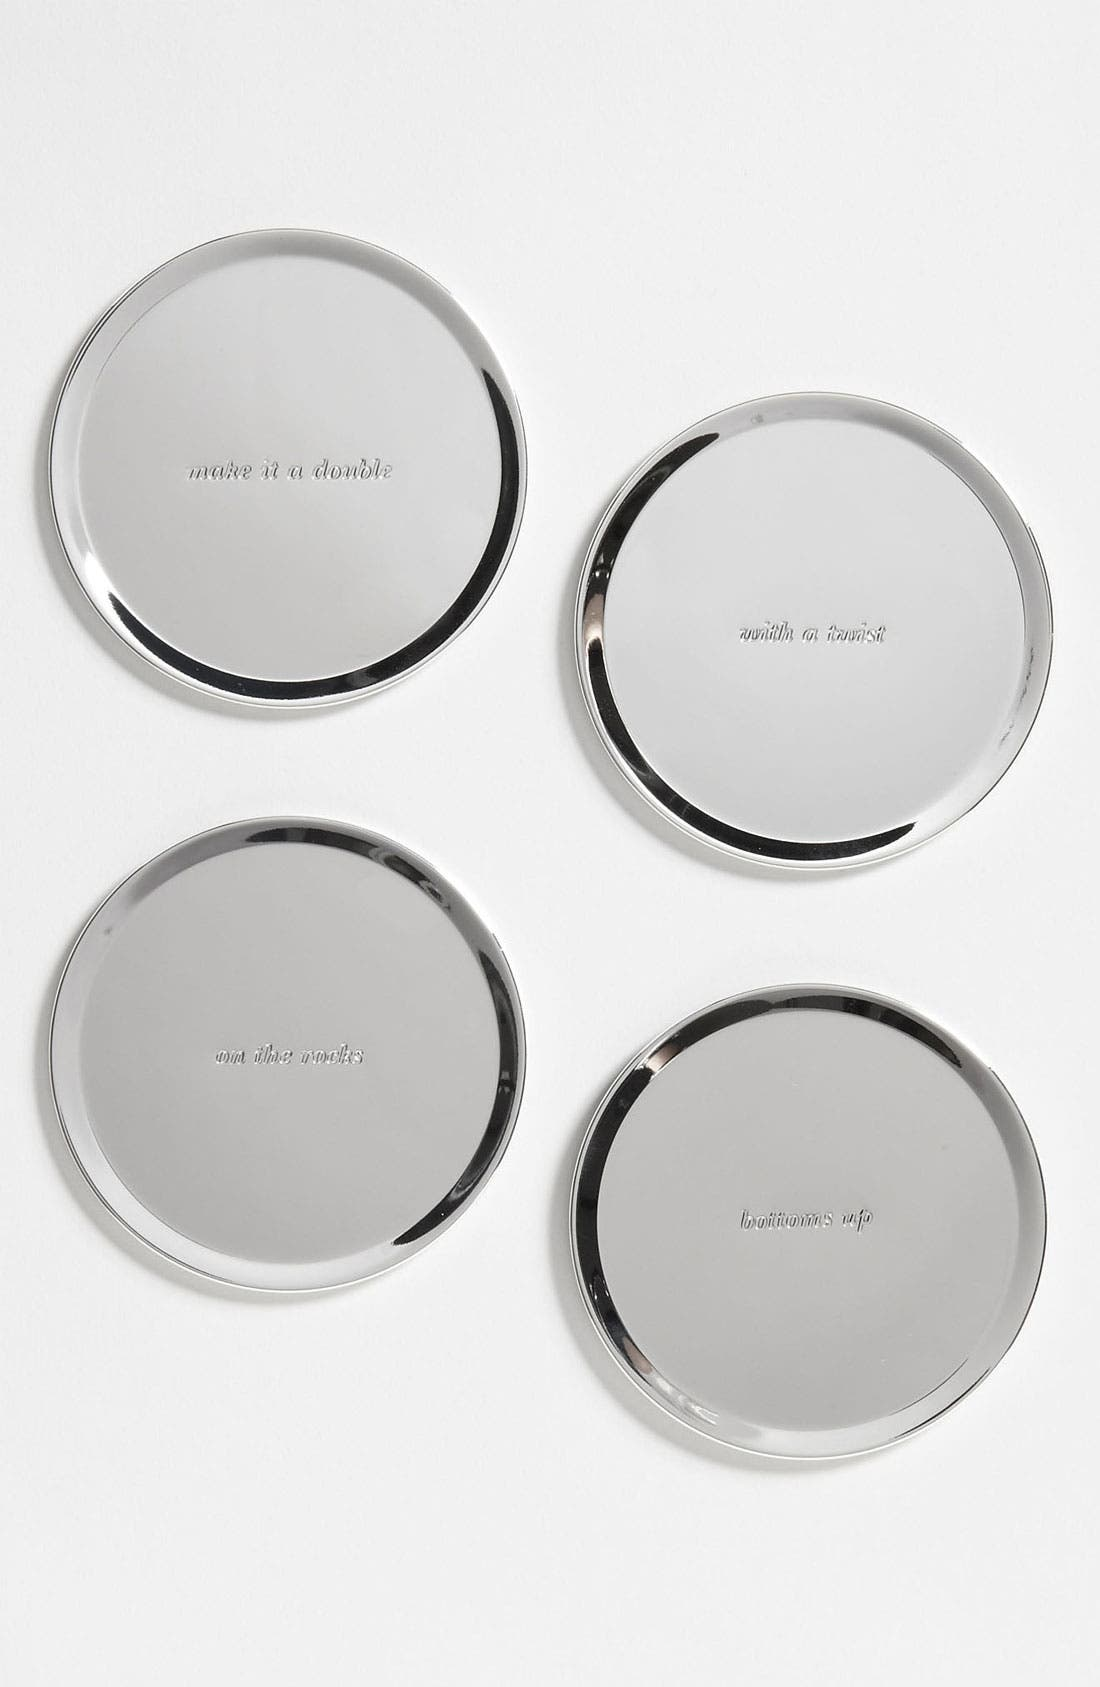 Main Image - kate spade new york set of 4 silver street coasters